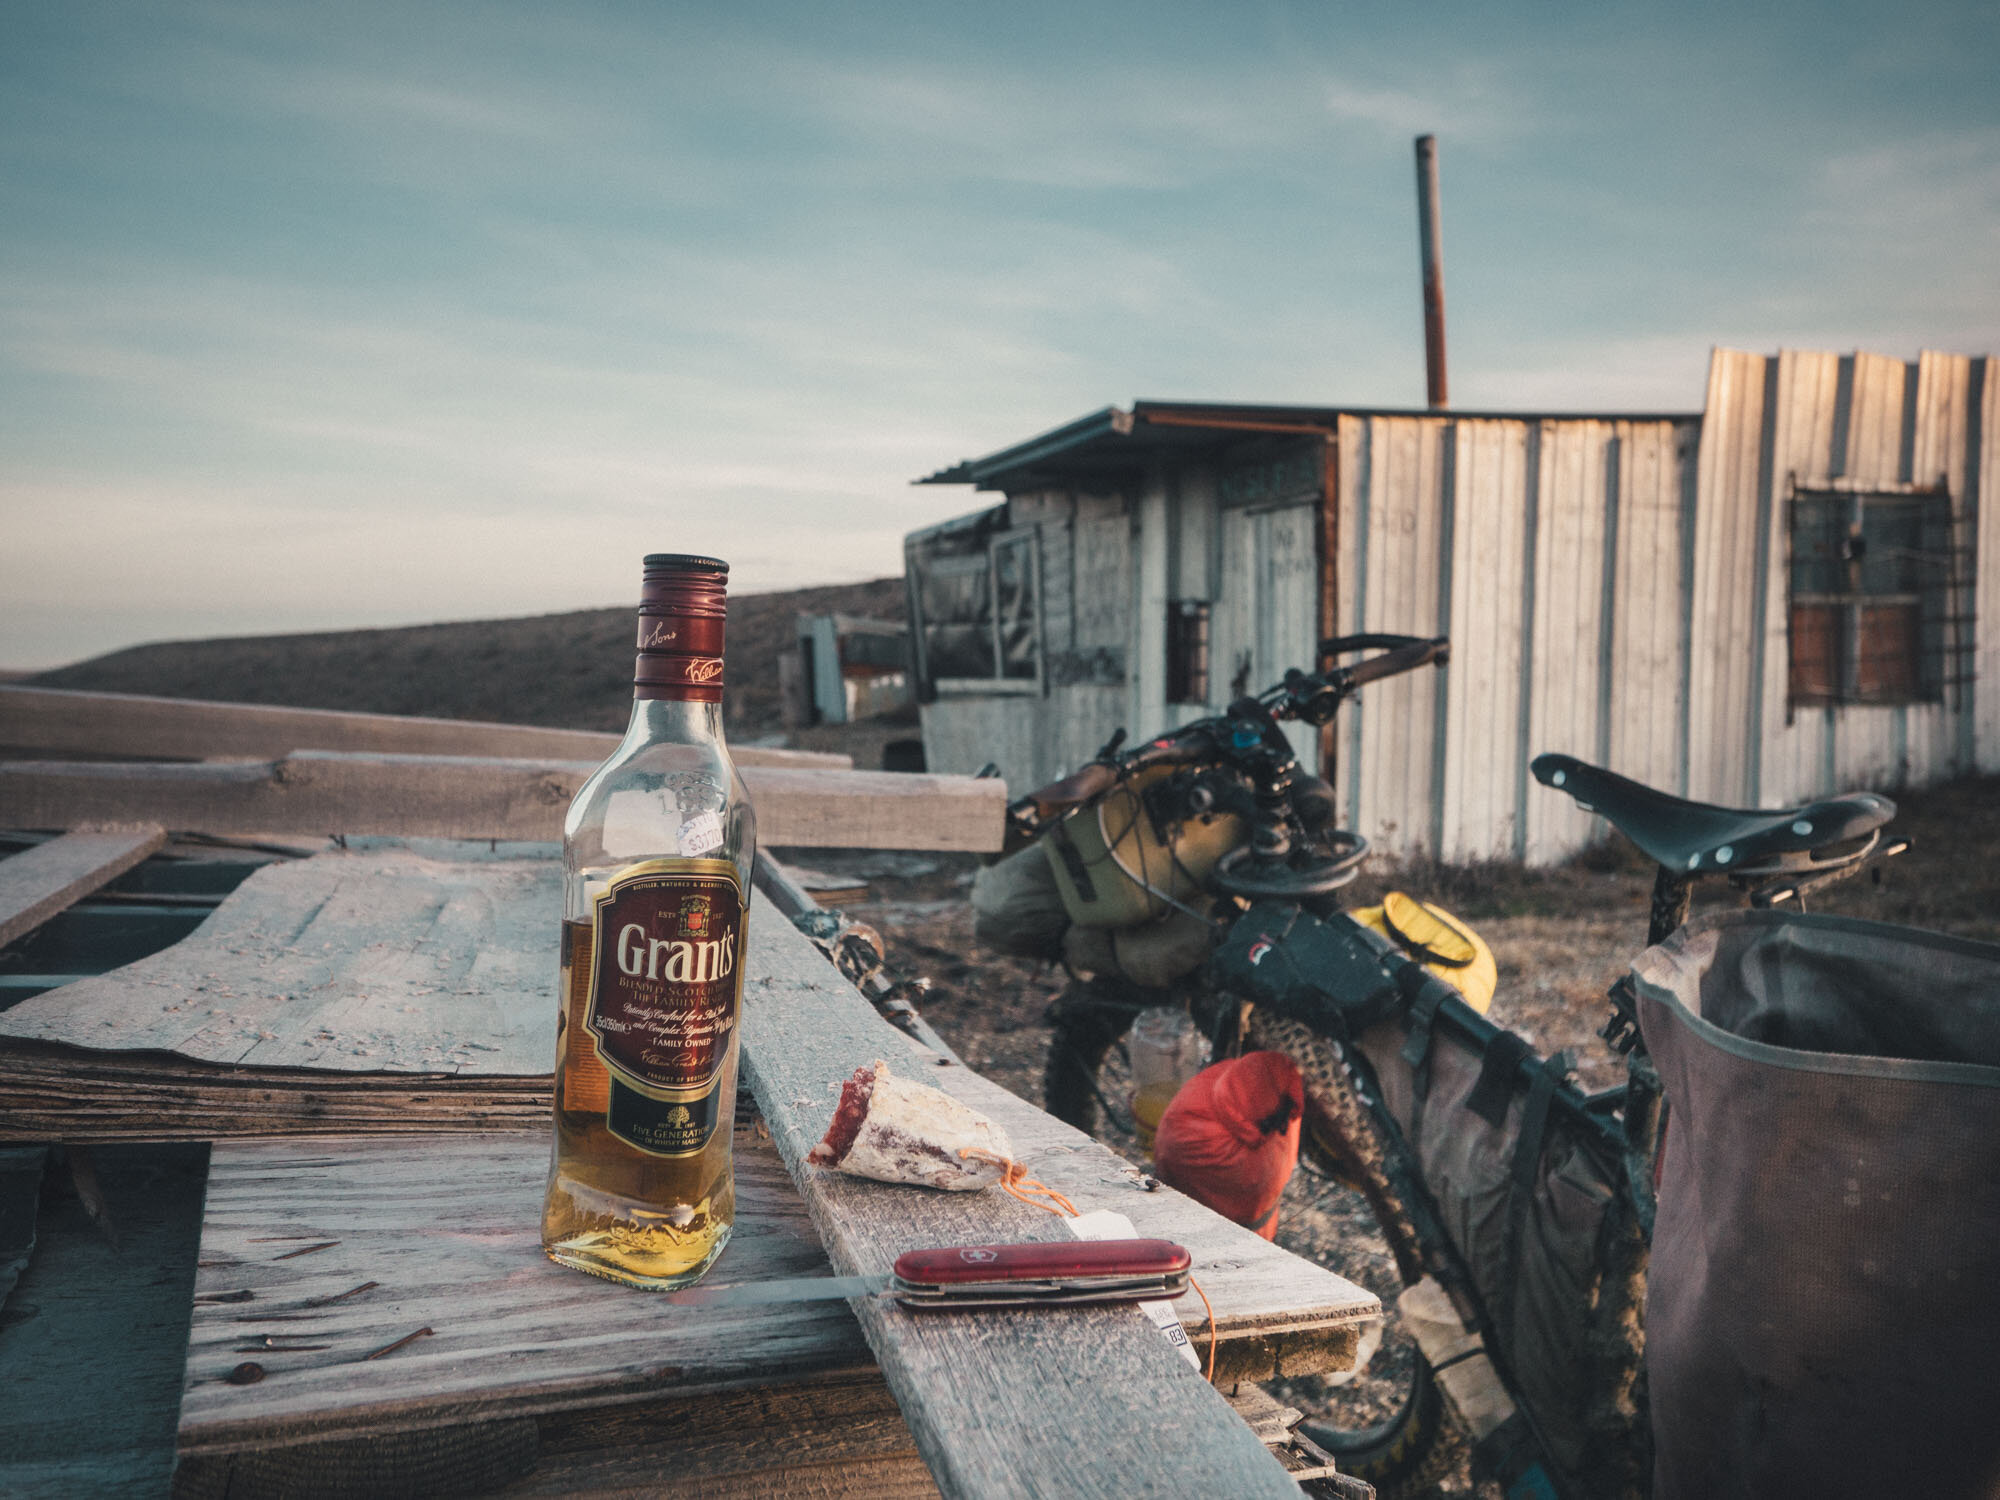 End of the day treat at an abandoned fishing cabin on the beach of the Atlanctic Coast.